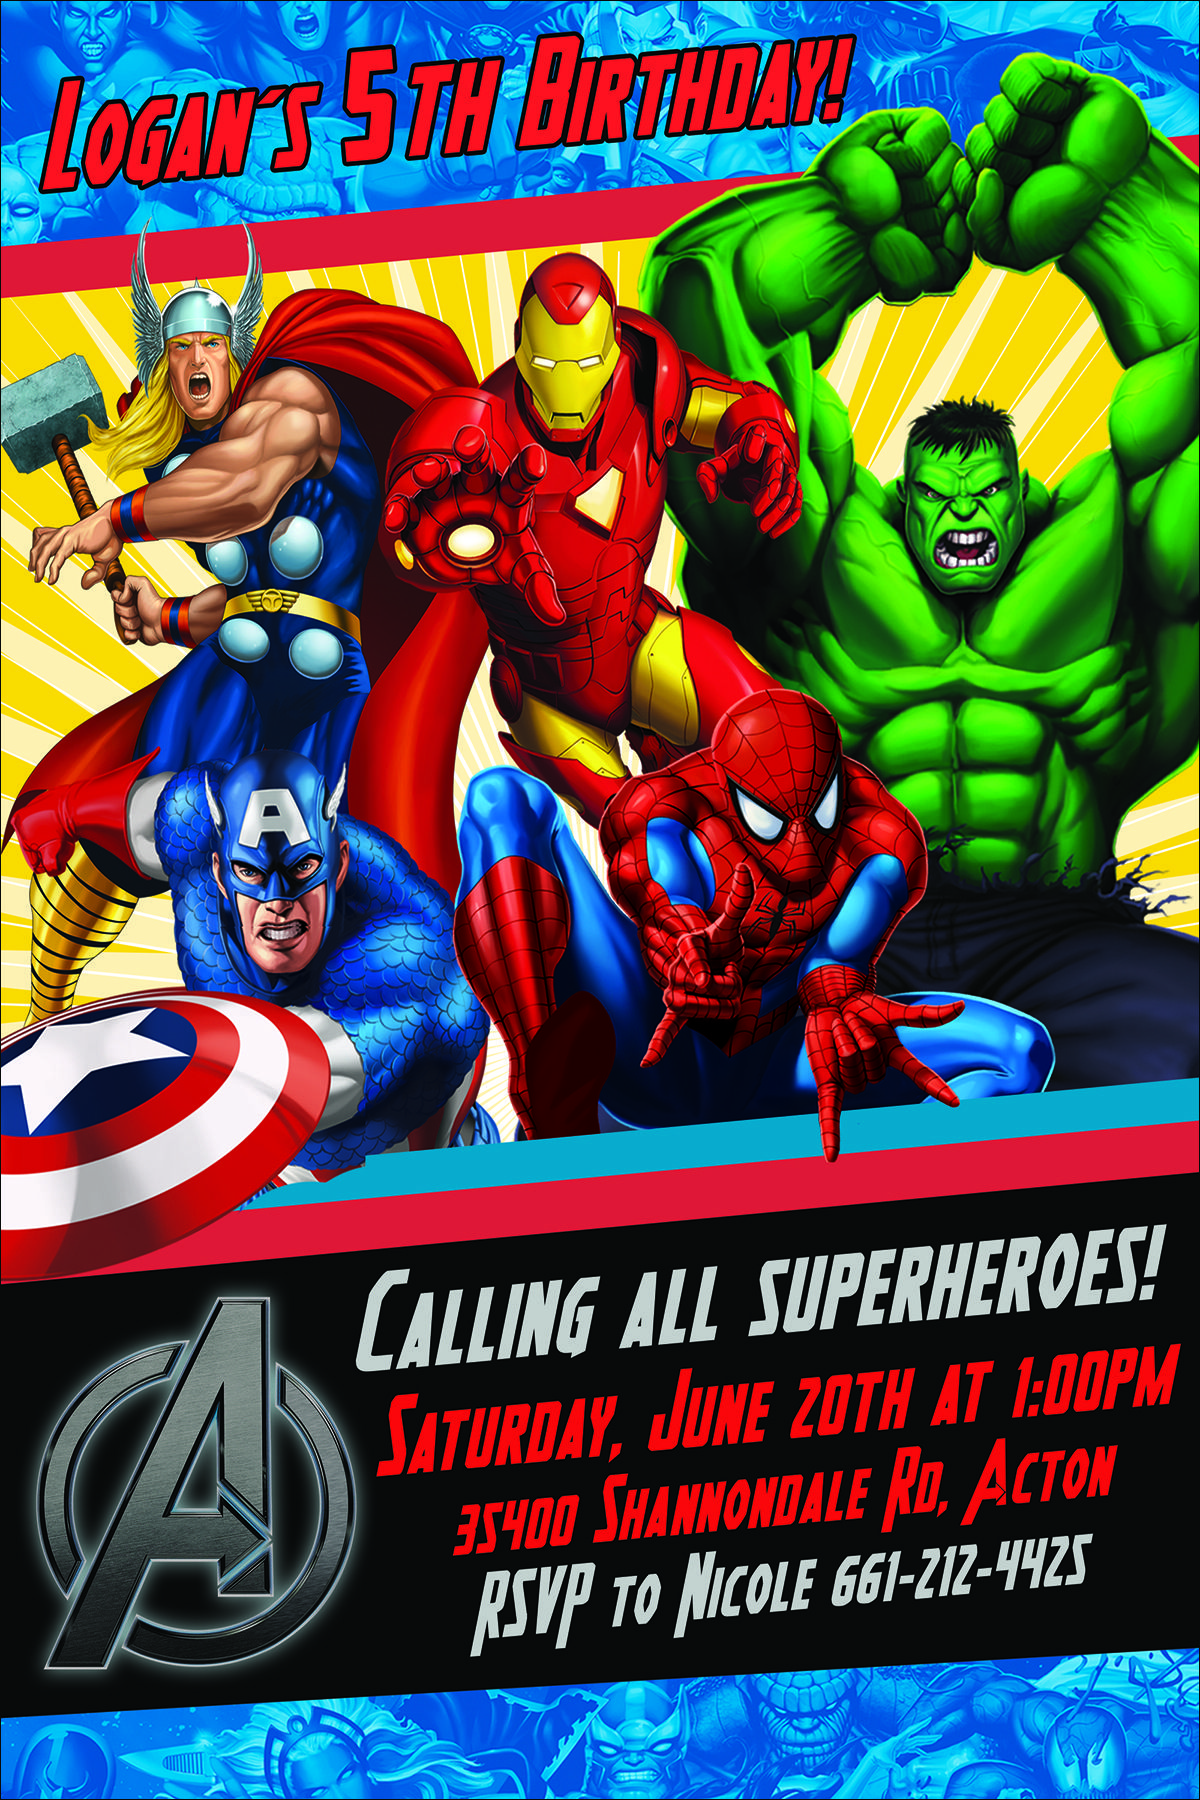 Avengers Birthday Invite Etsy